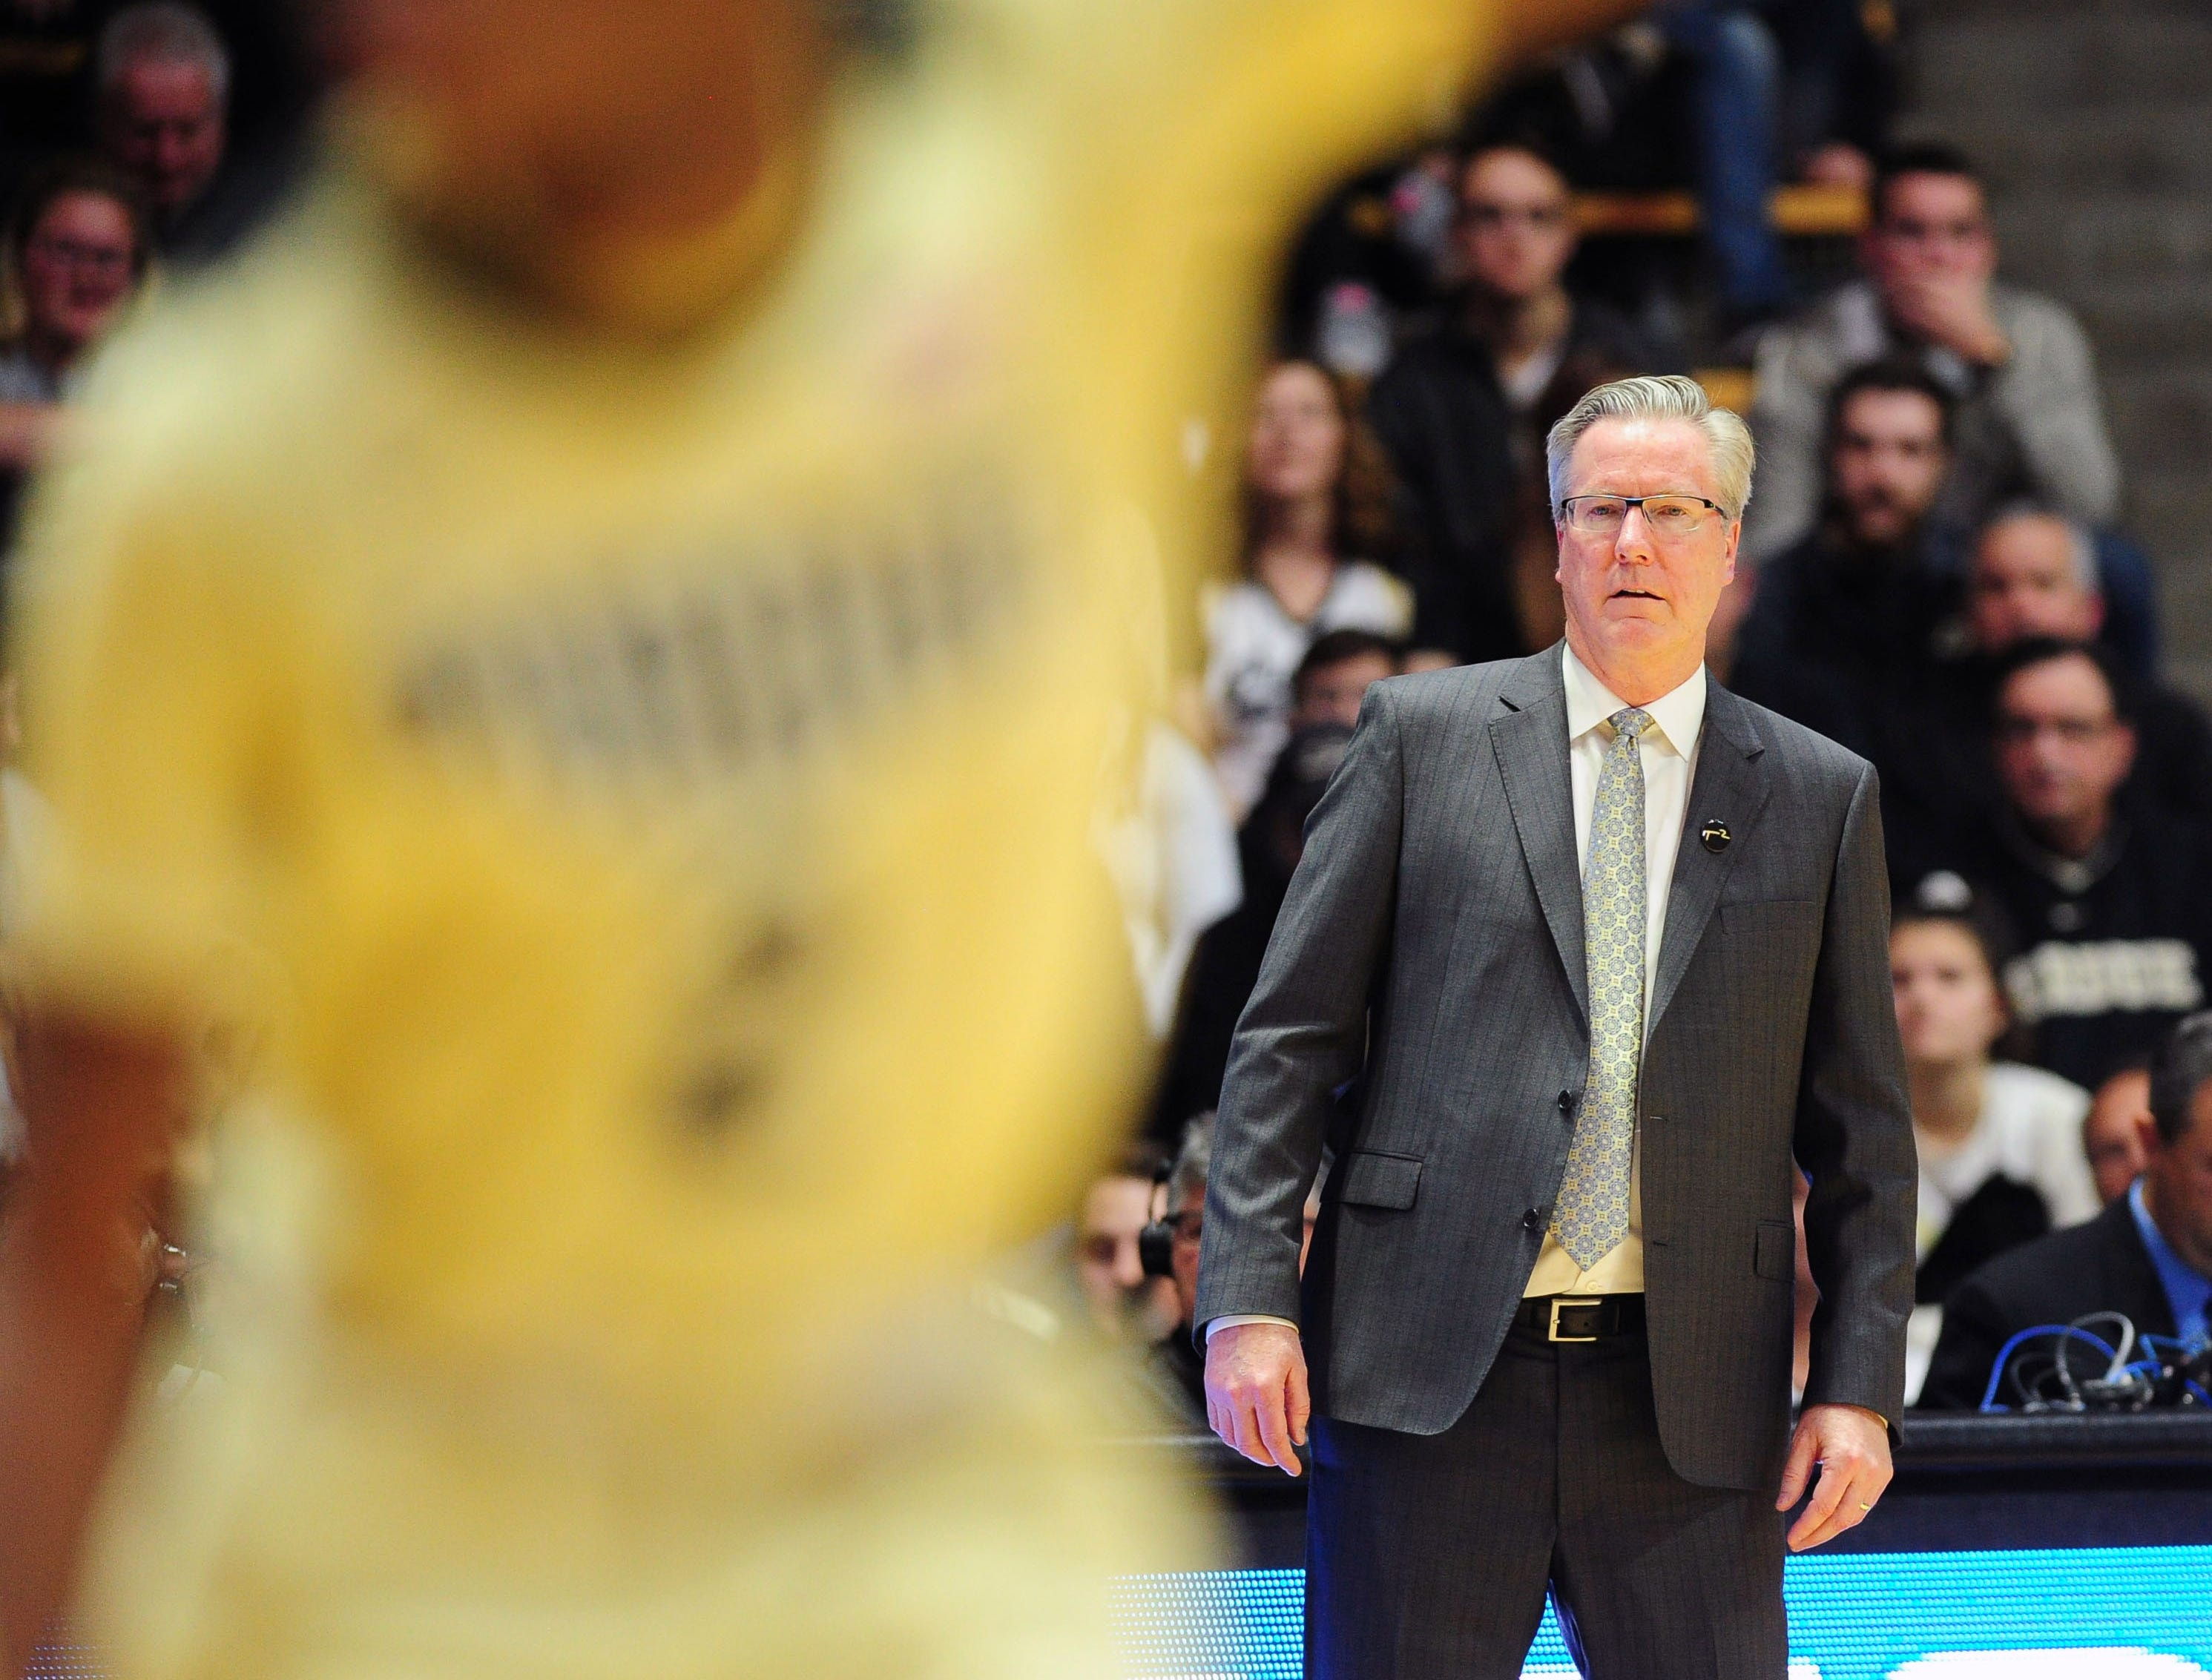 Jan 3, 2019; West Lafayette, IN, USA; Iowa Hawkeyes head coach Fran McCaffrey watches the action in the second half against the Purdue Boilermakers at Mackey Arena. Mandatory Credit: Thomas J. Russo-USA TODAY Sports